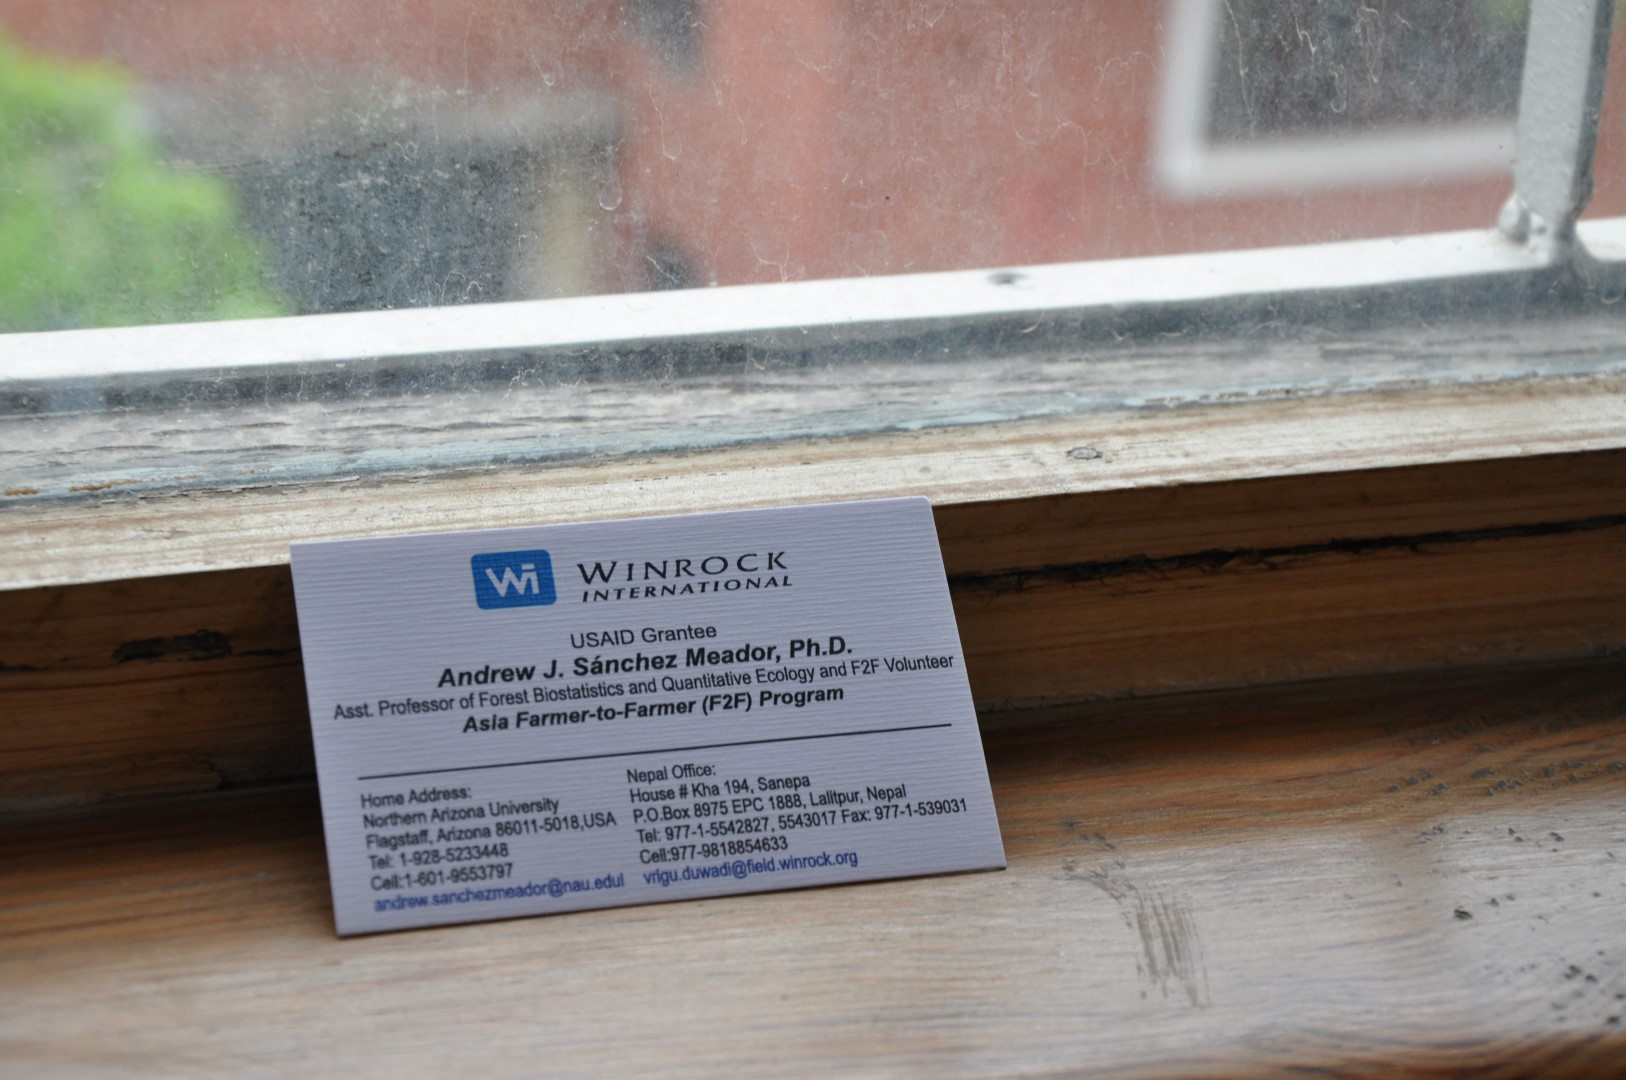 My Winrock business card